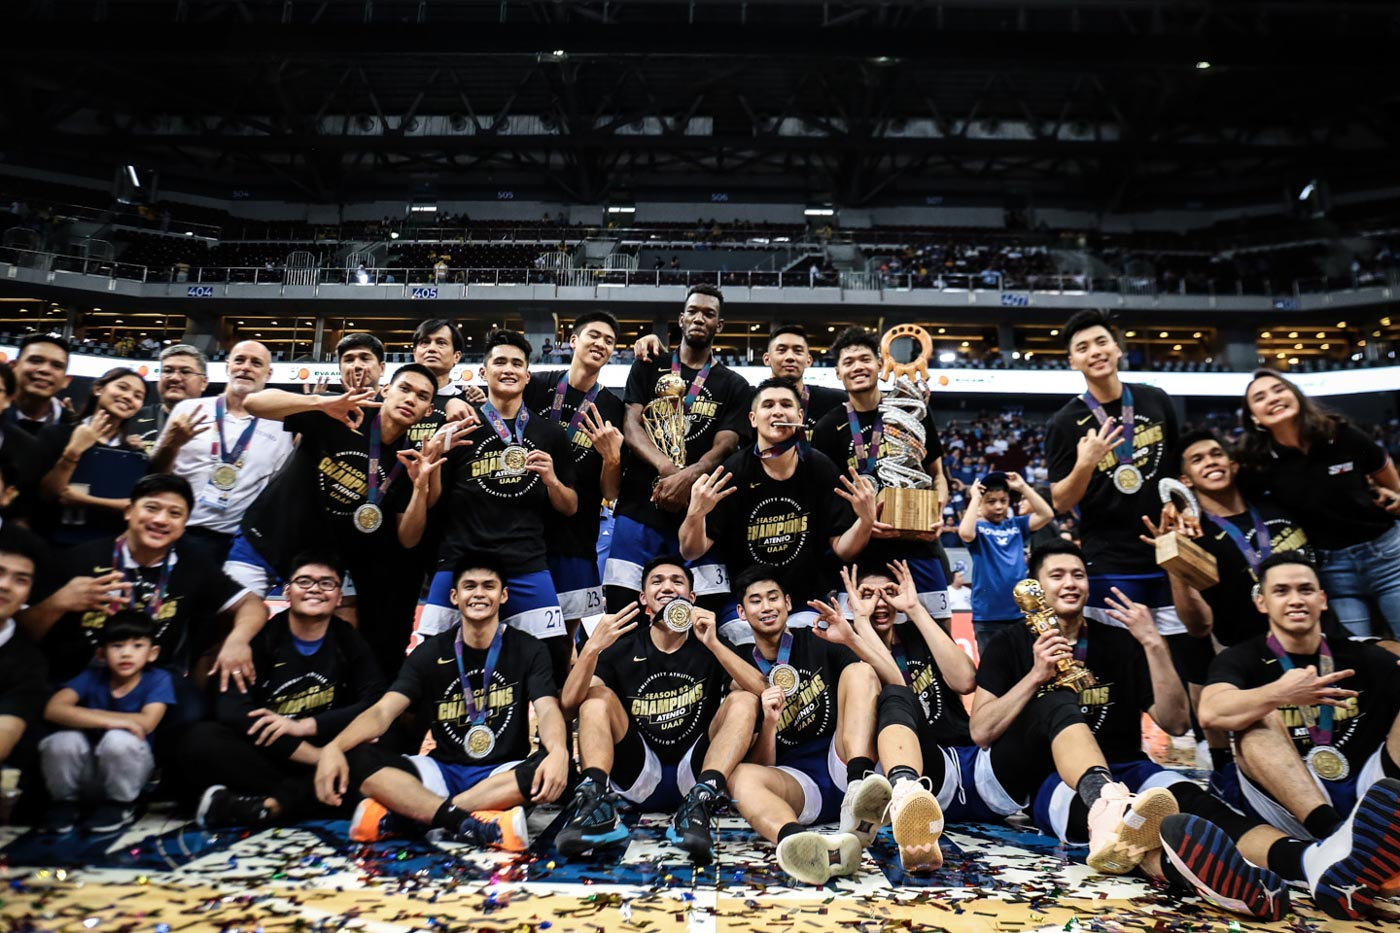 PERFECTION. The Ateneo Blue Eagles flash their trophies and three-peat championship shirts. Photo by Josh Albelda/Rappler